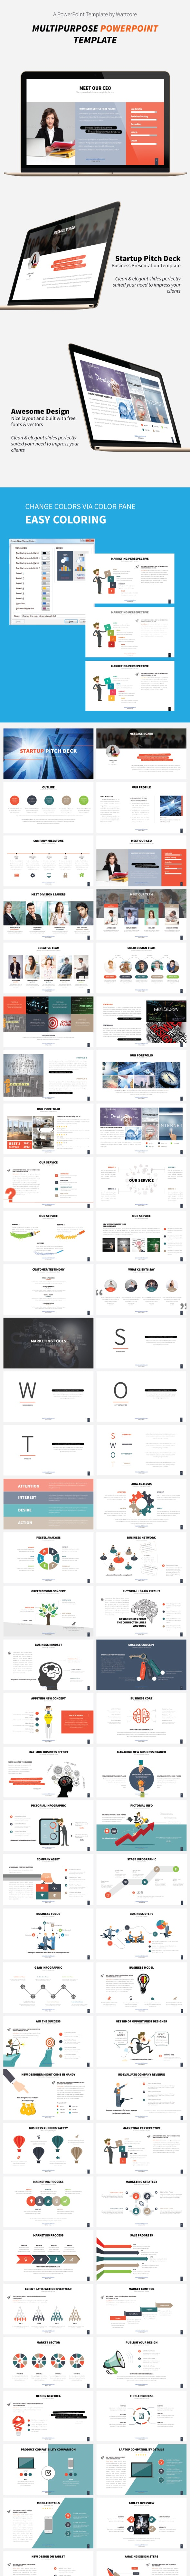 Startup Pitch Deck - Business PowerPoint Templates